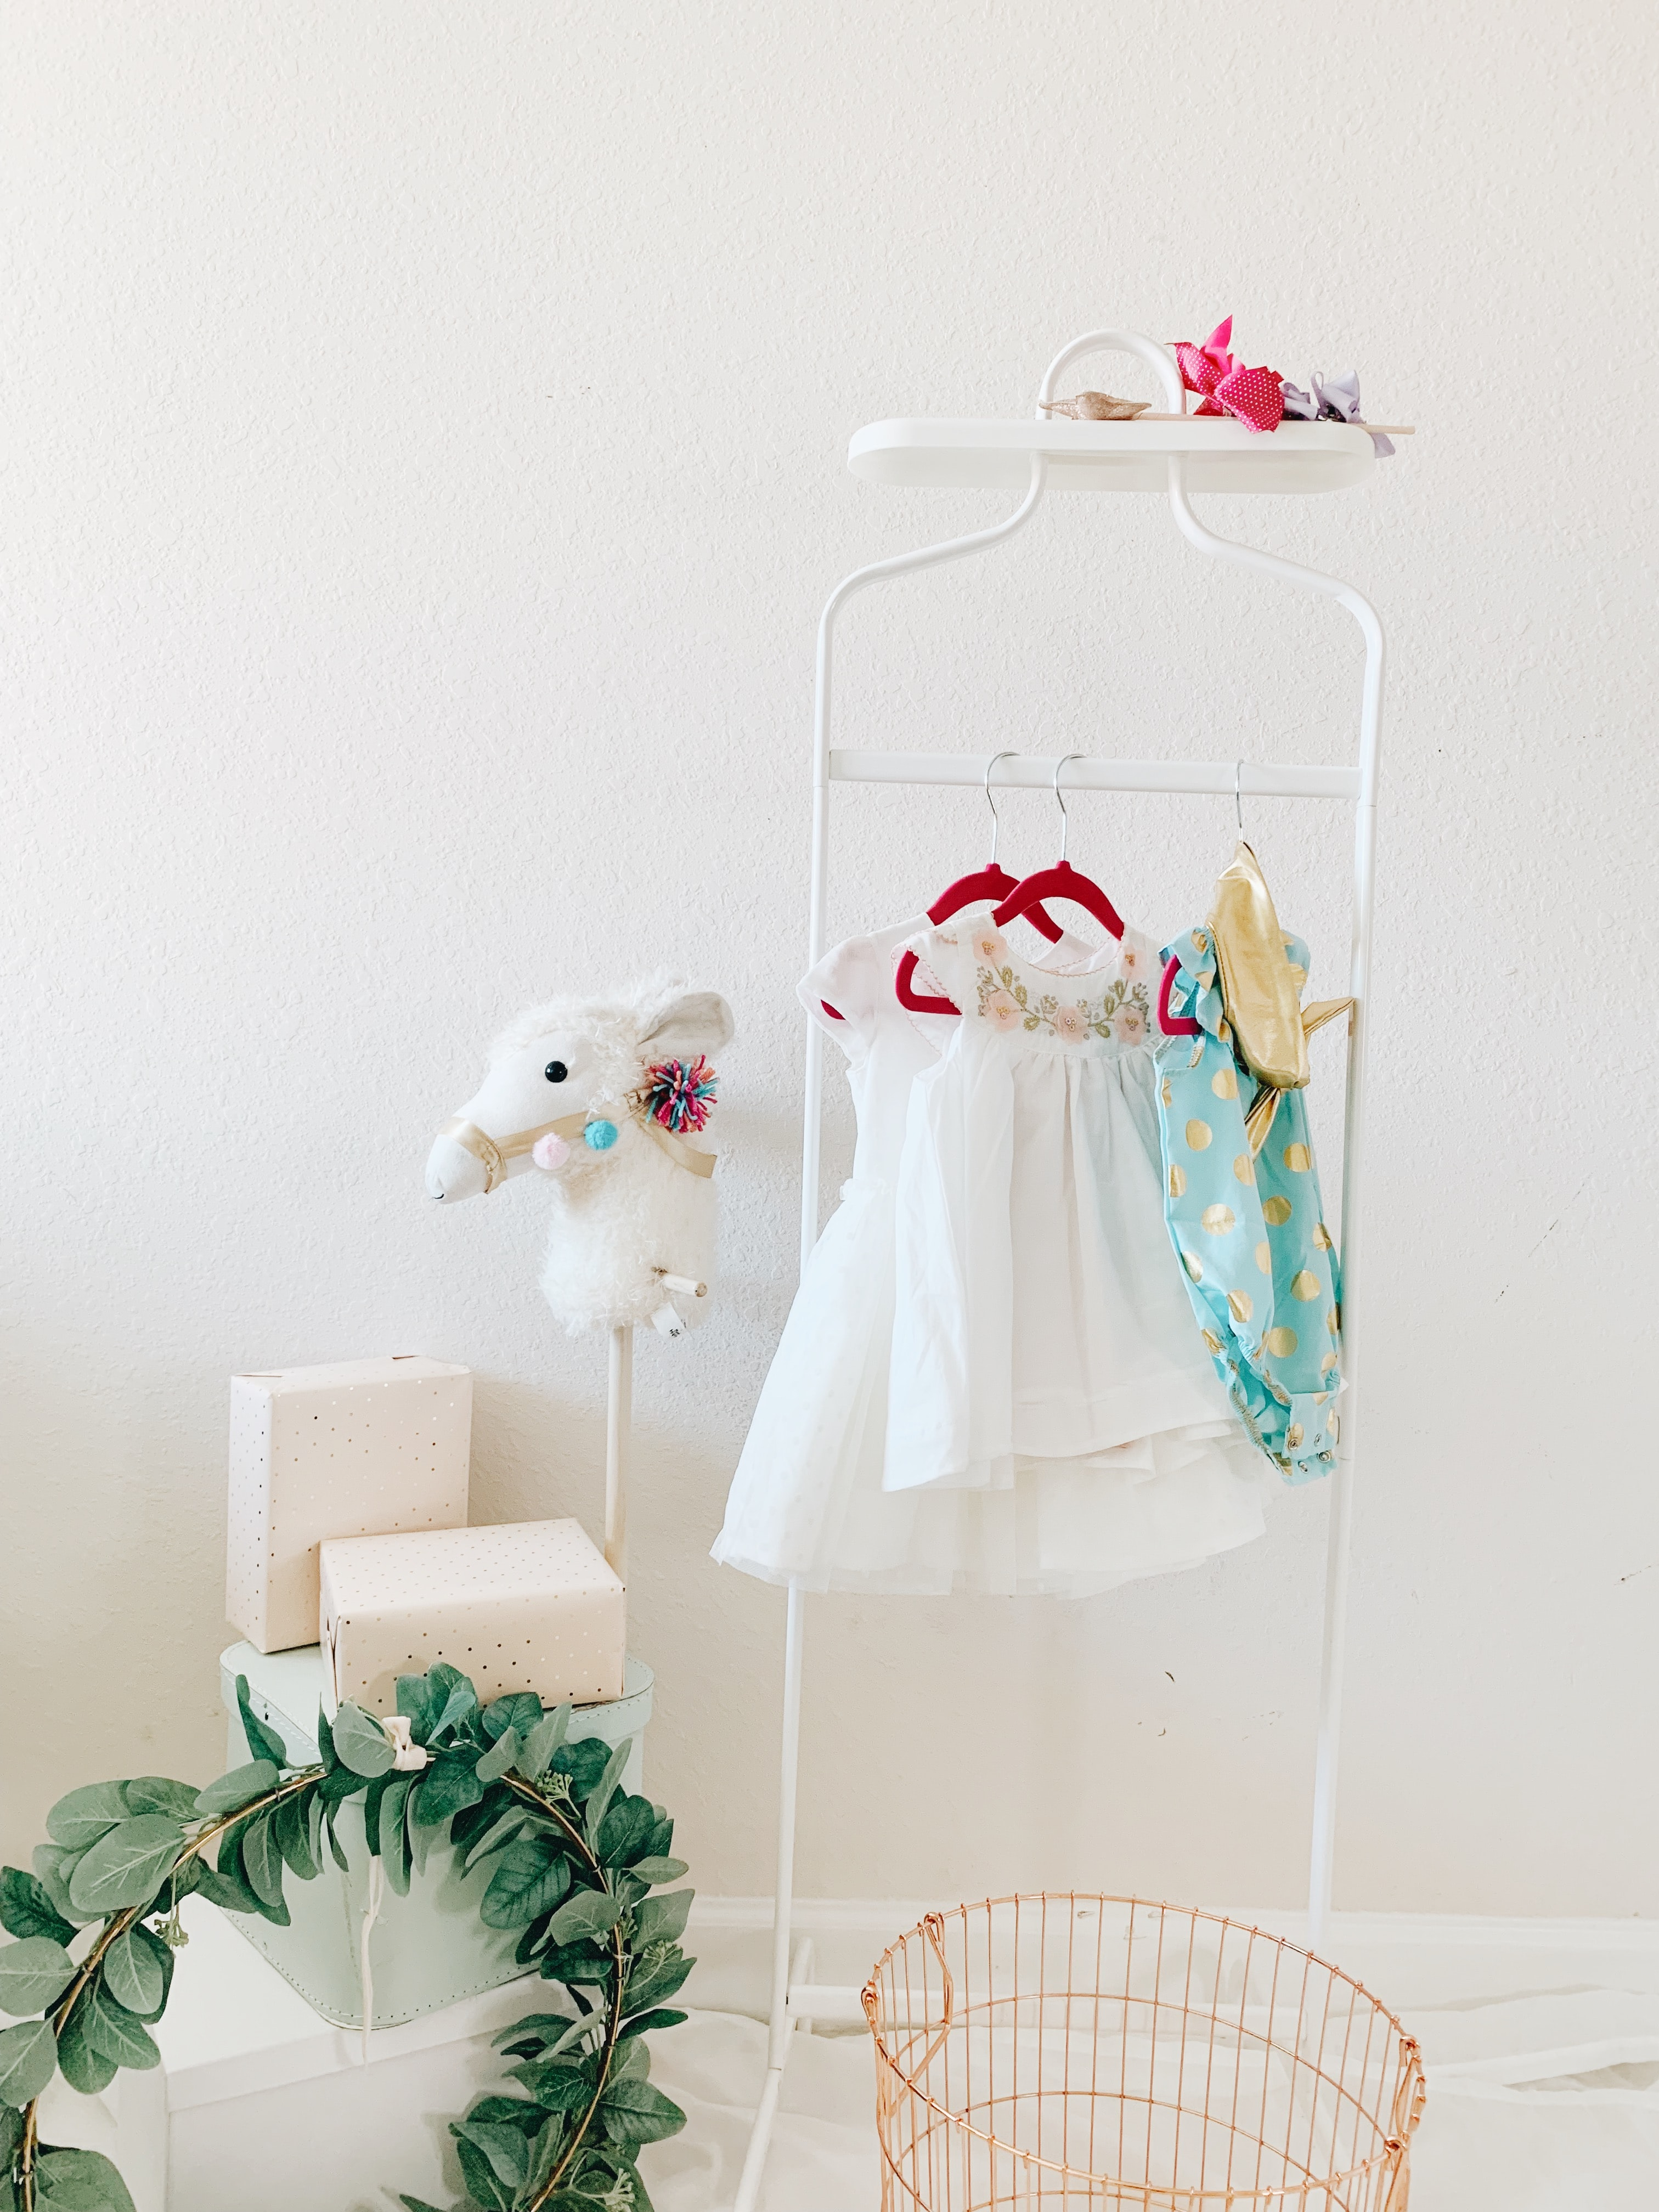 toddler's clothes hanged on rack